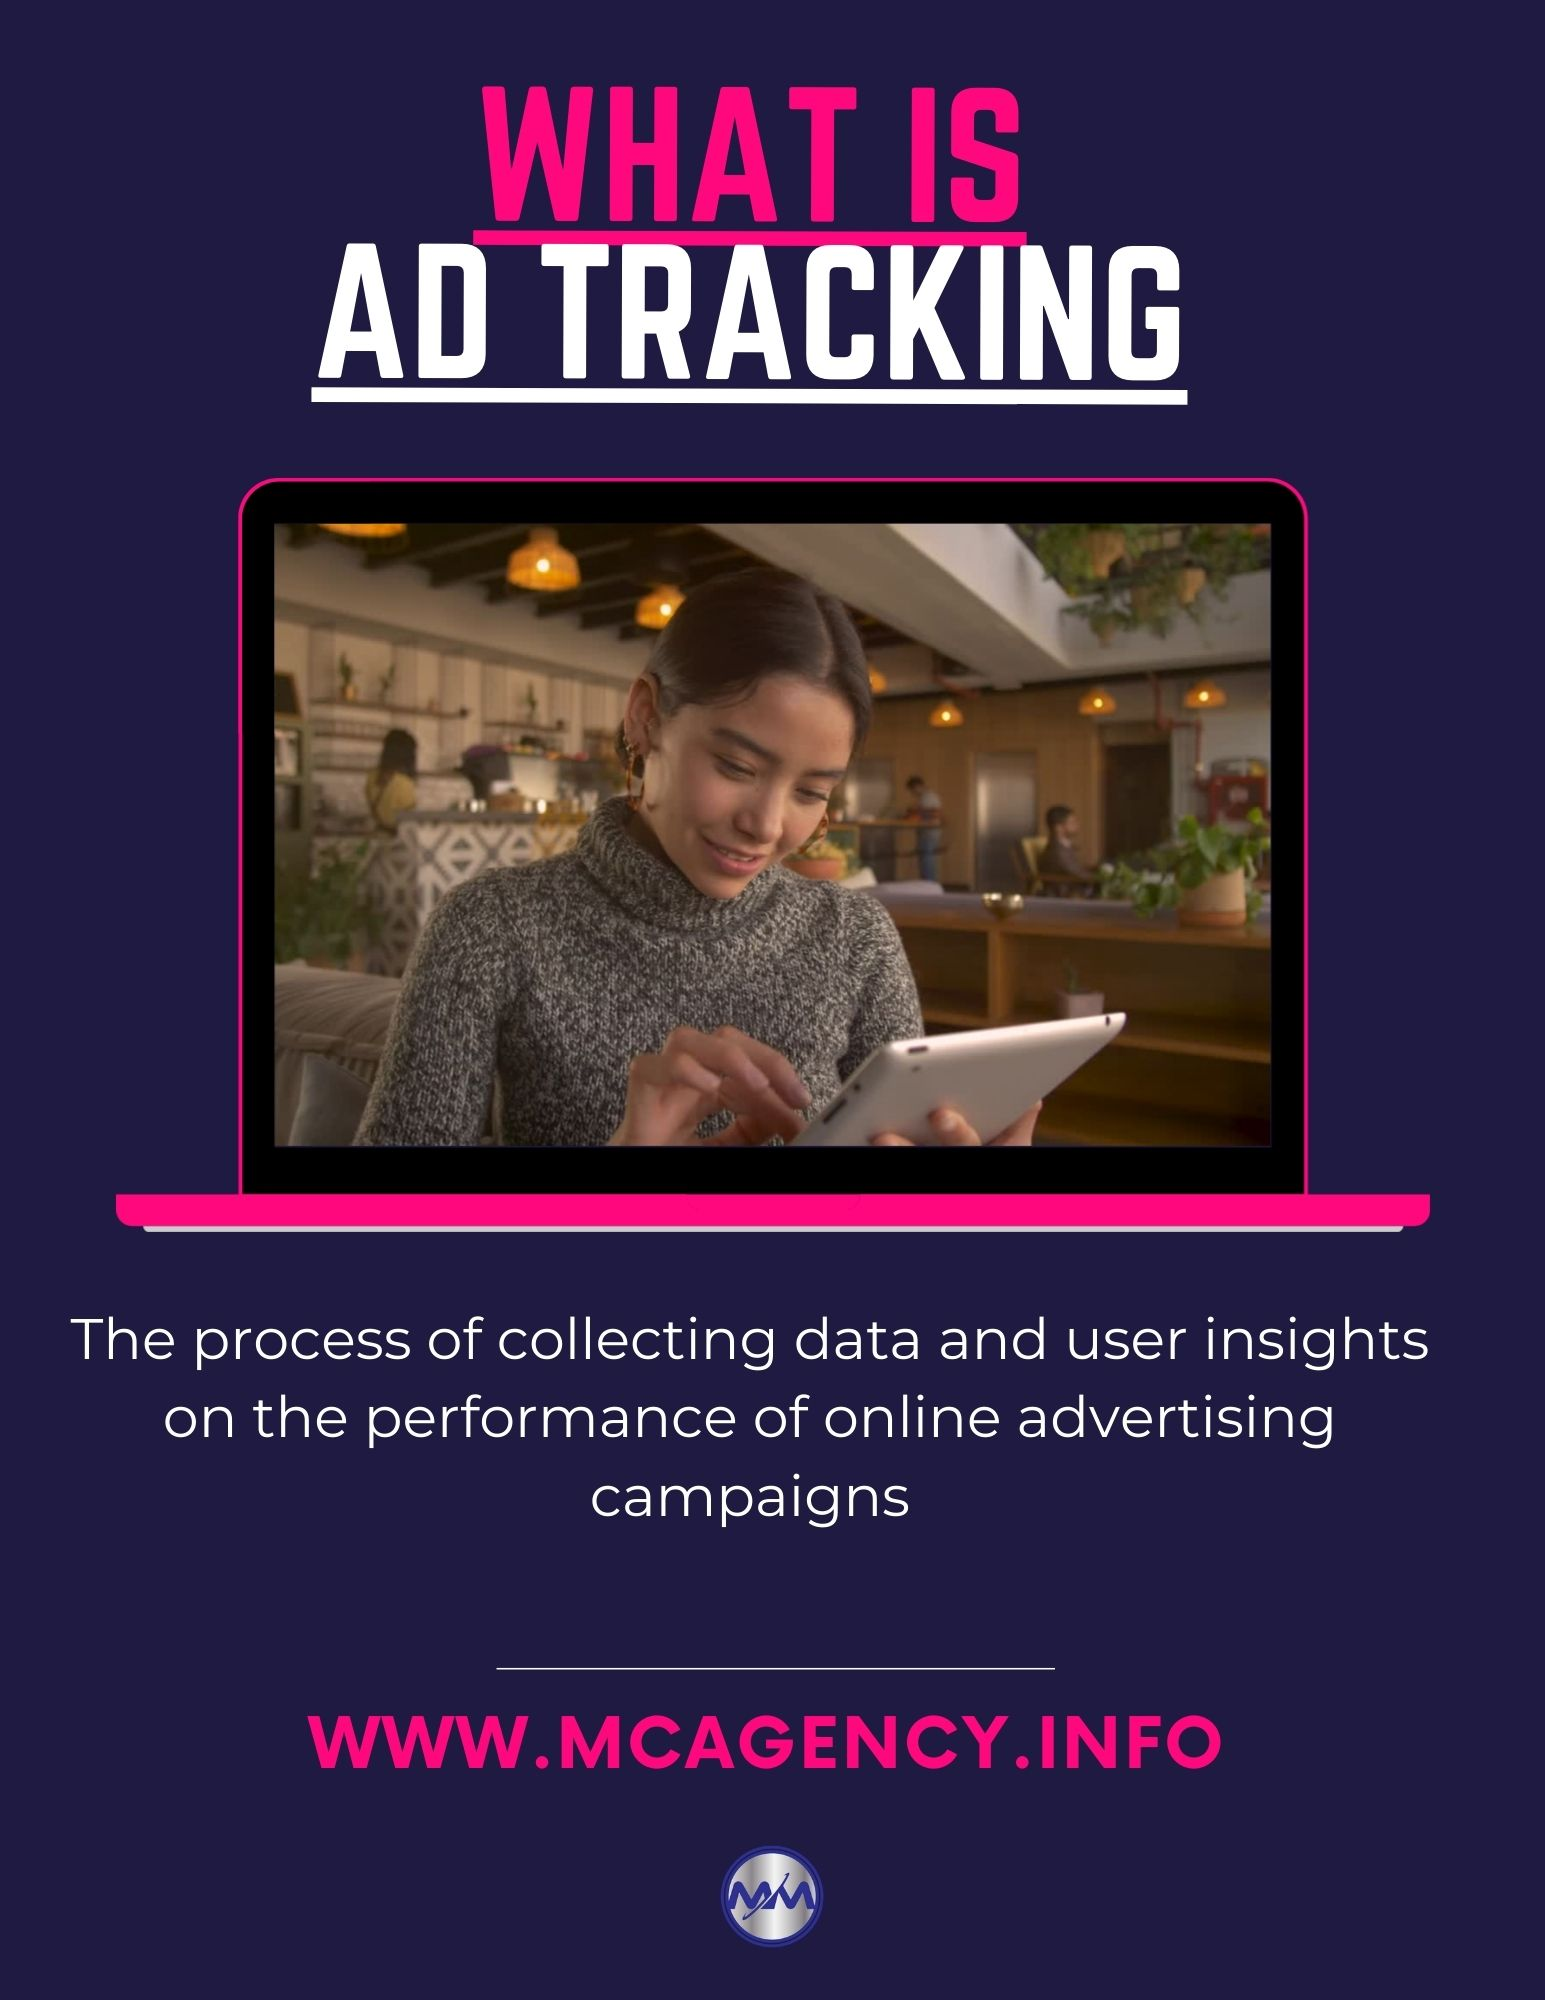 What is Ad Tracking?